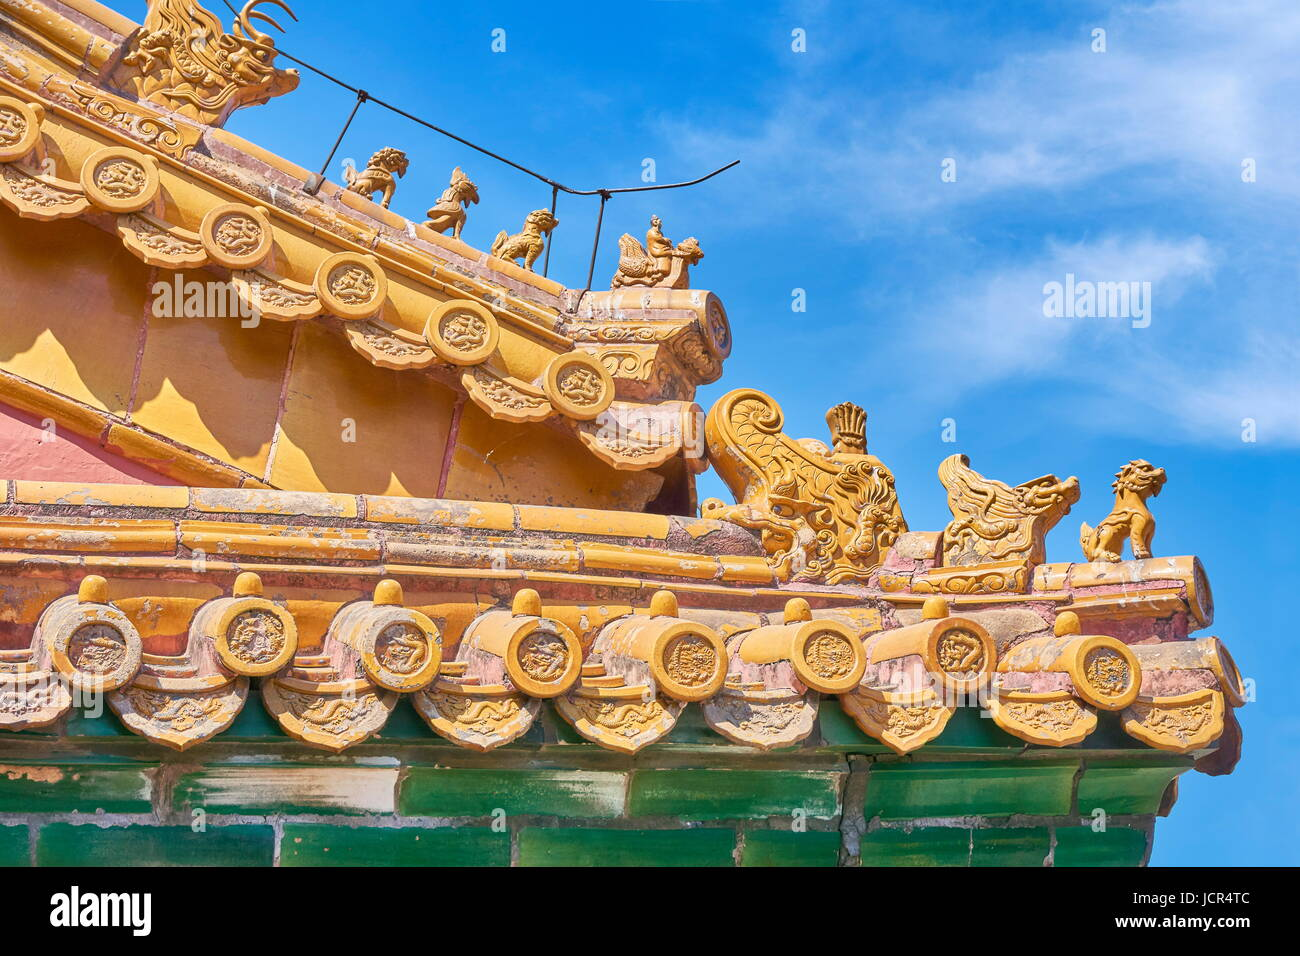 Gable decoration on the end of the roof, Forbidden City, Beijing, China - Stock Image